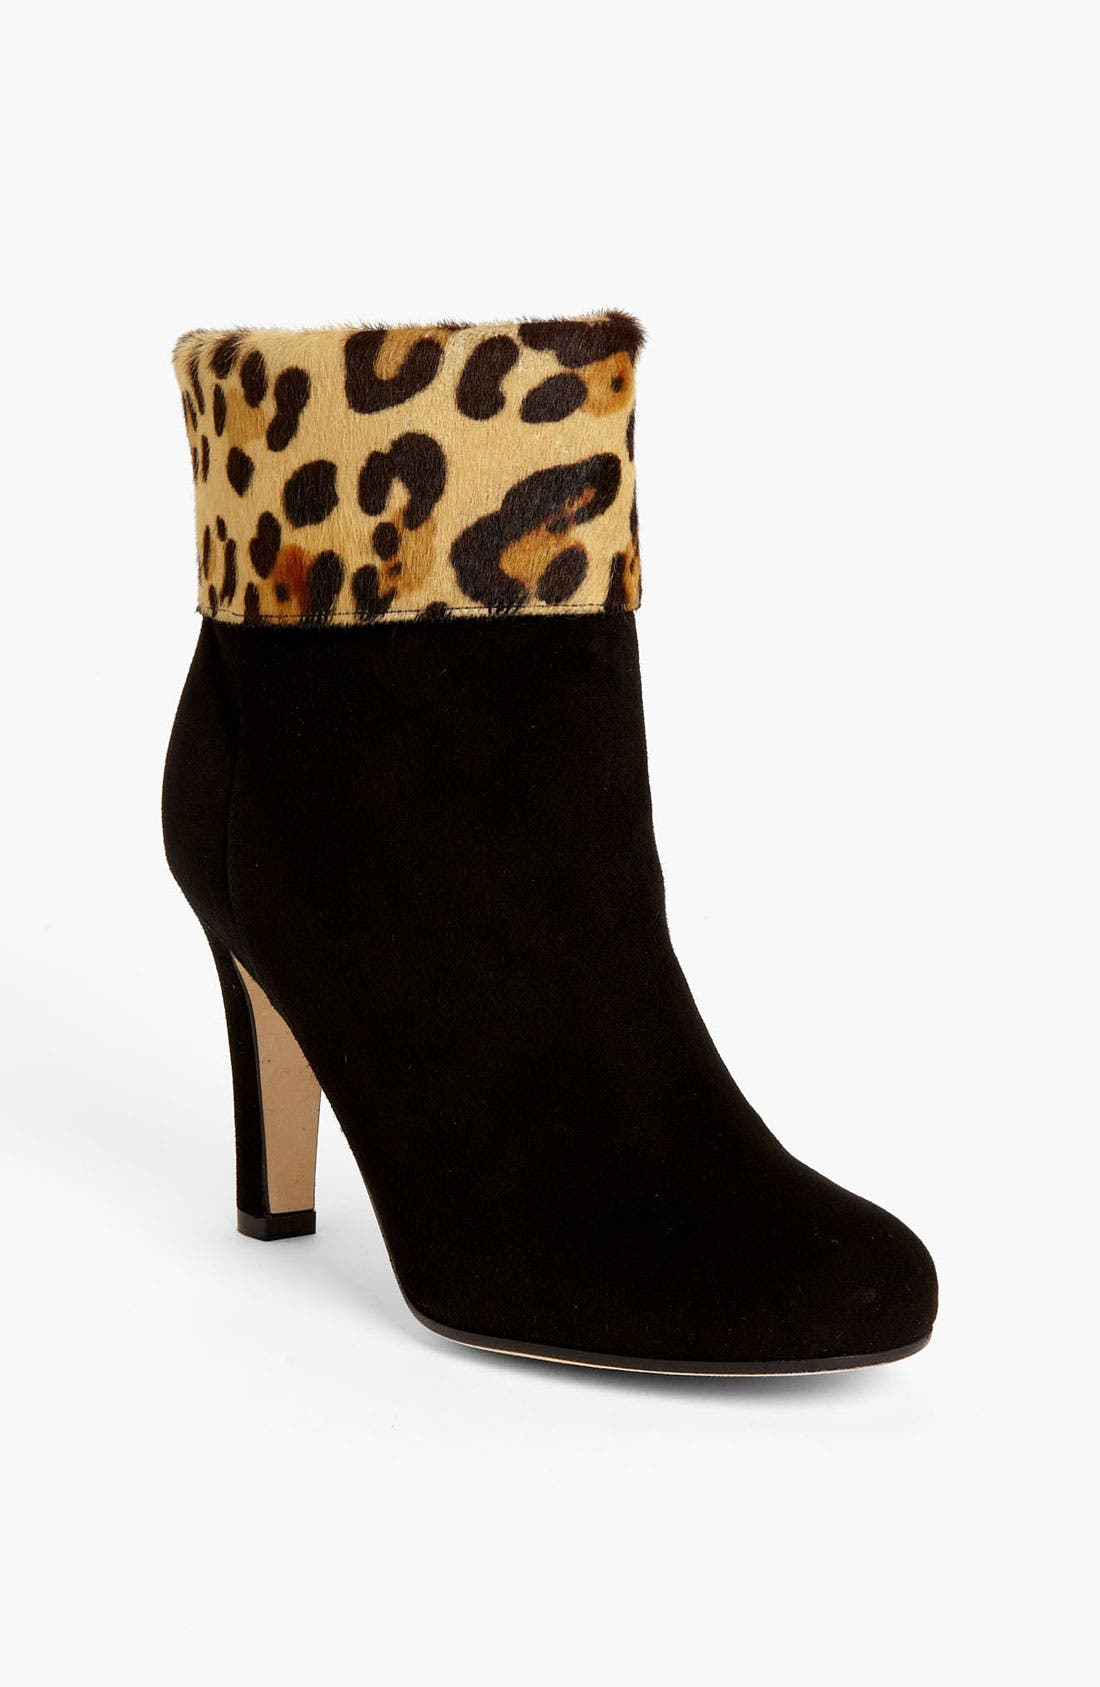 Main Image - kate spade new york 'lasso' boot